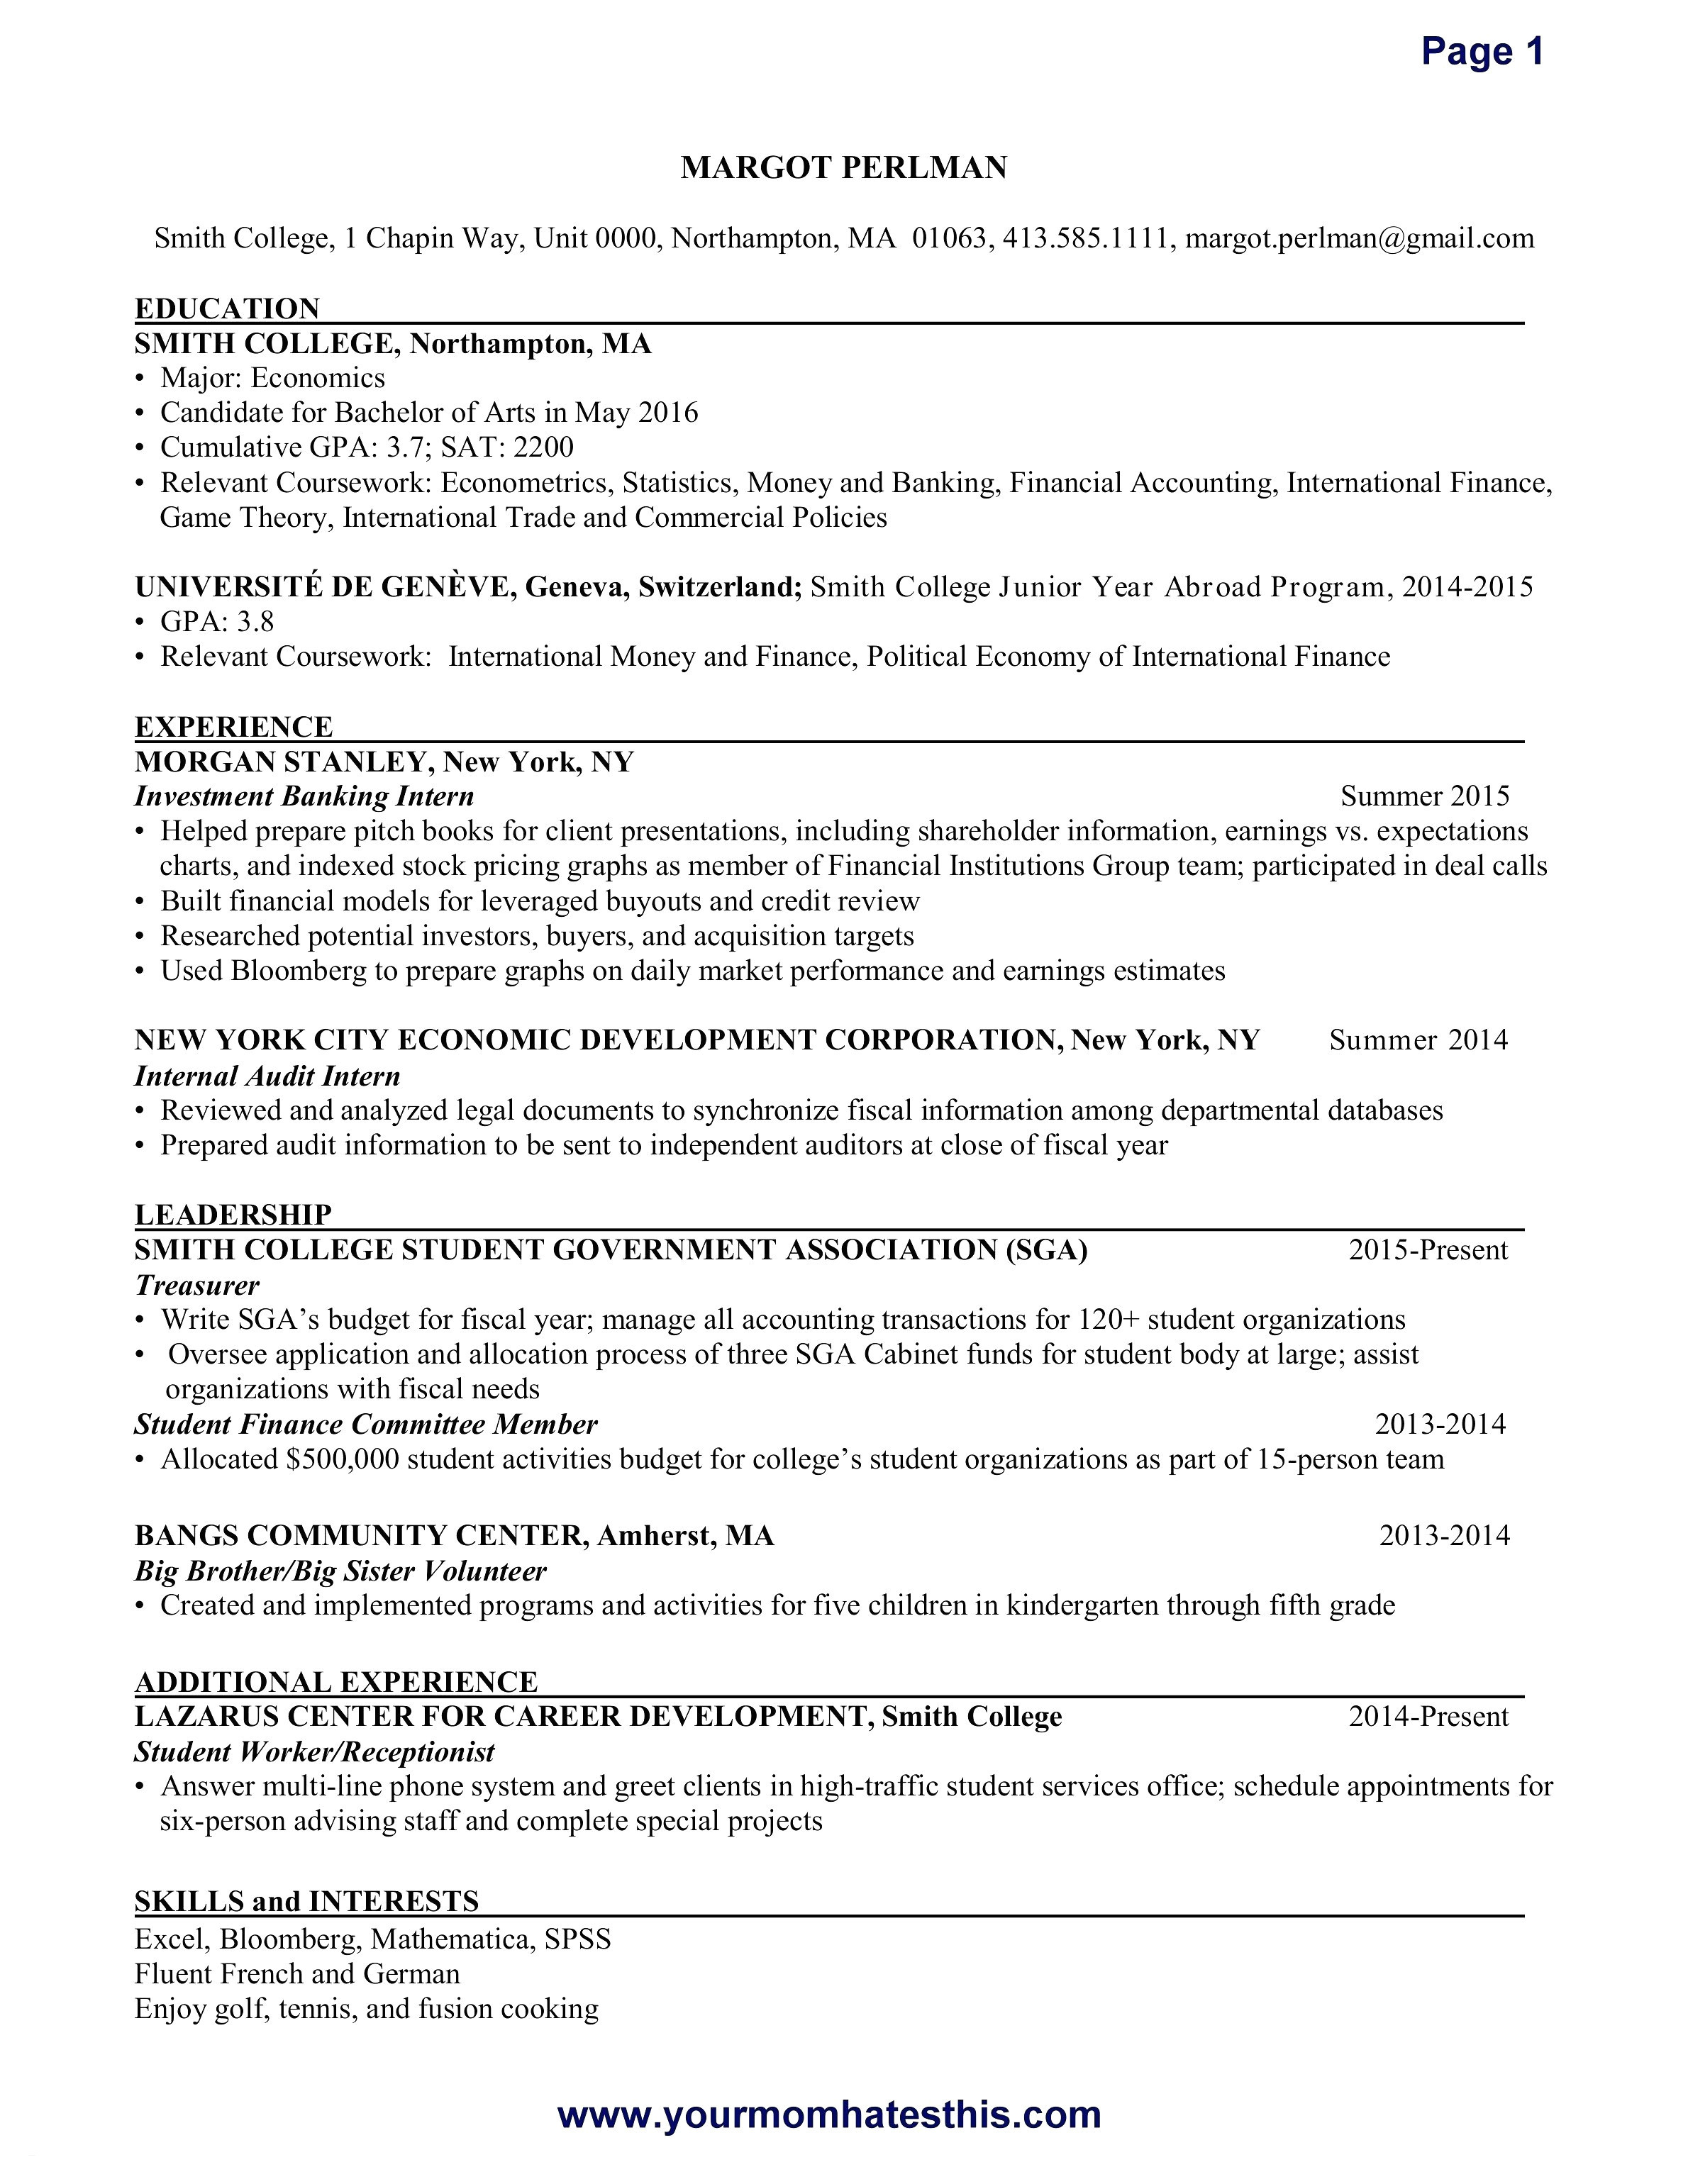 security resume template example-Awesome Security ficer Resume Sample 16-d